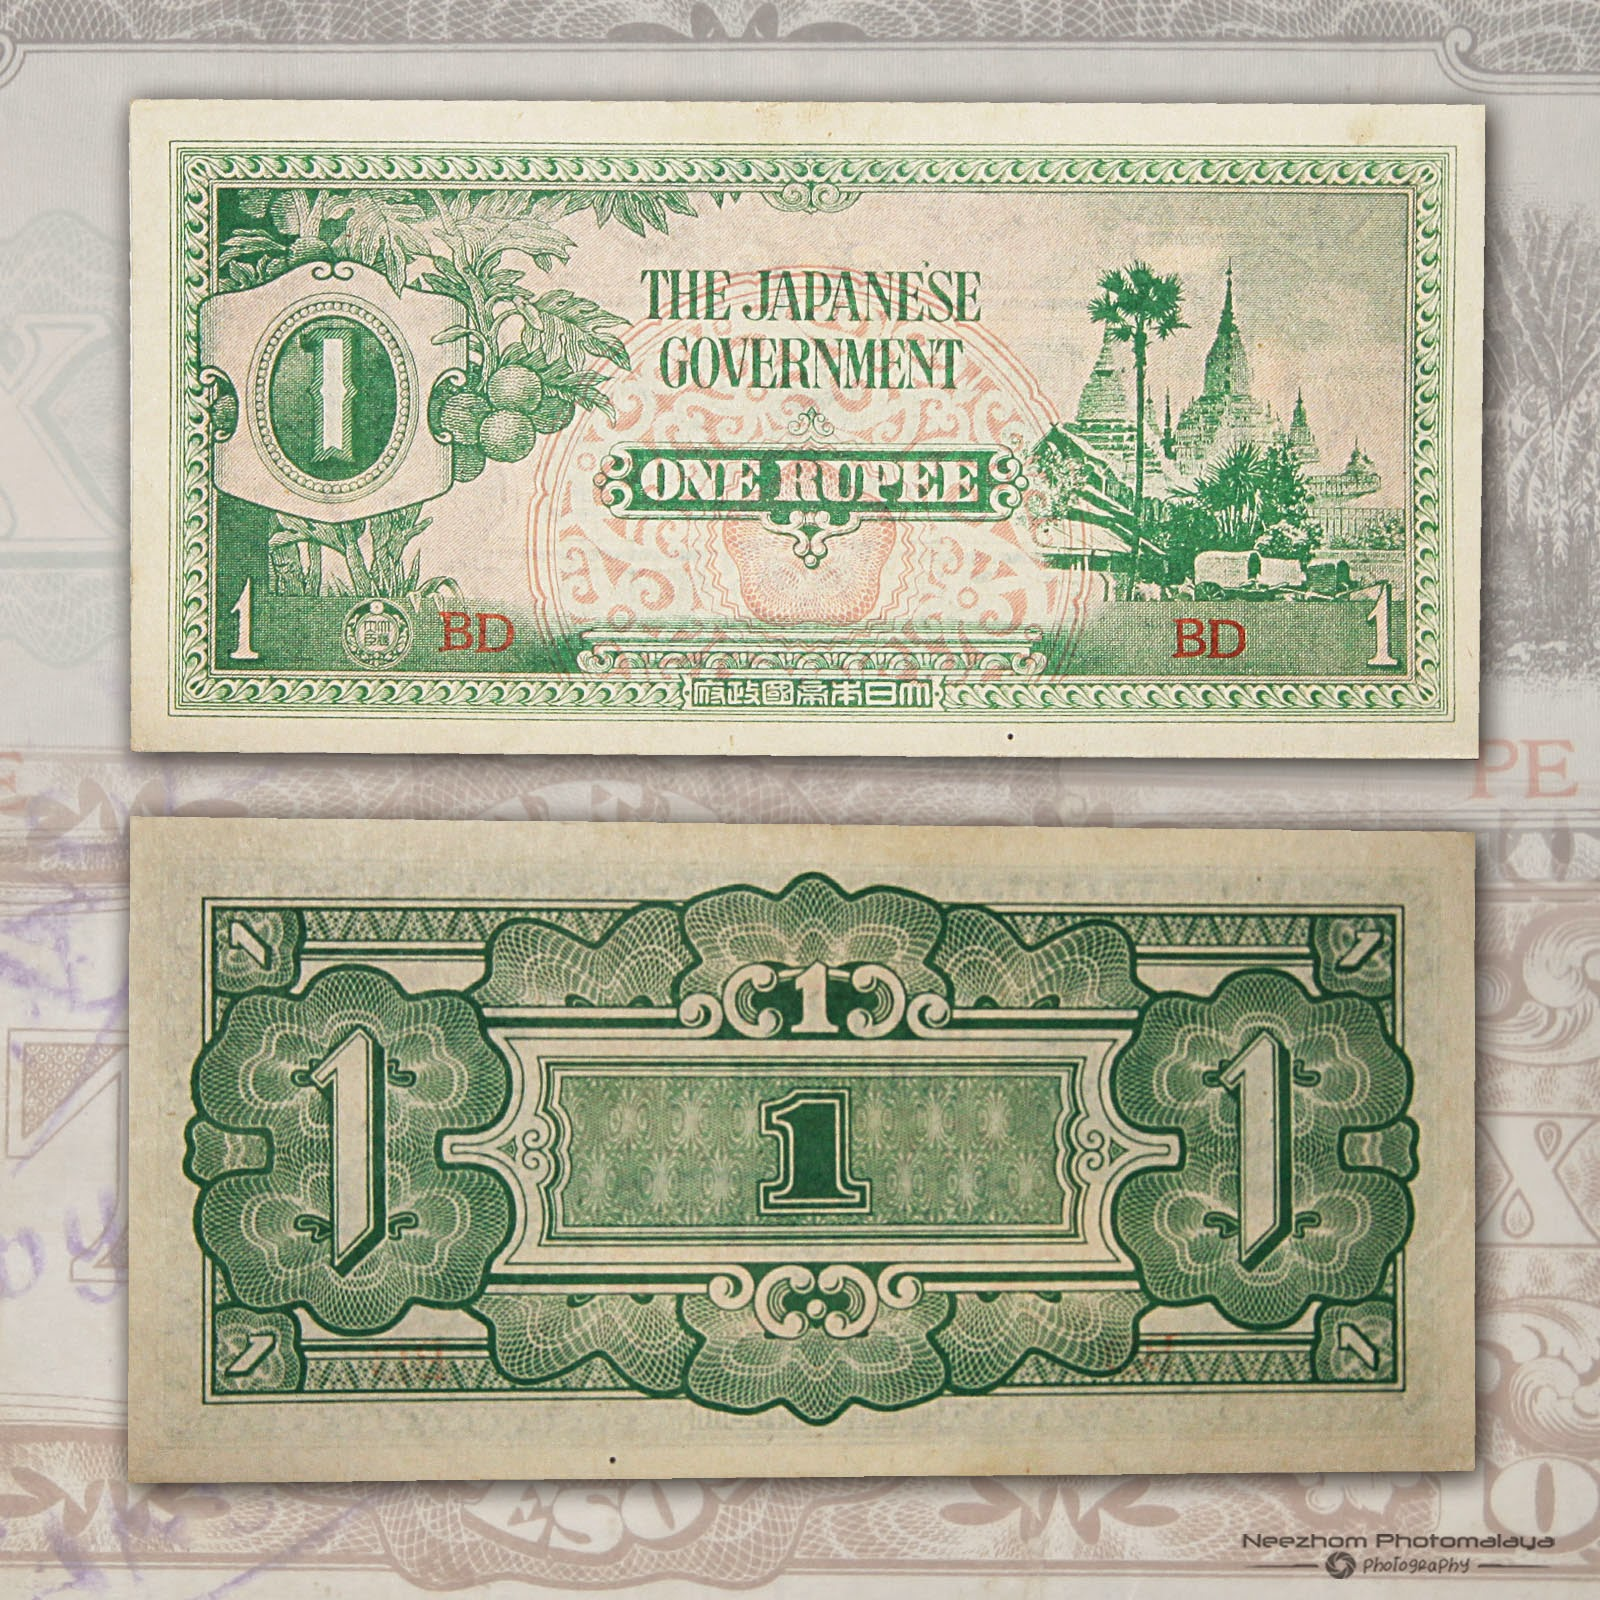 1 Rupee Burma Myanmar banknote 1942 Japanese Occupation